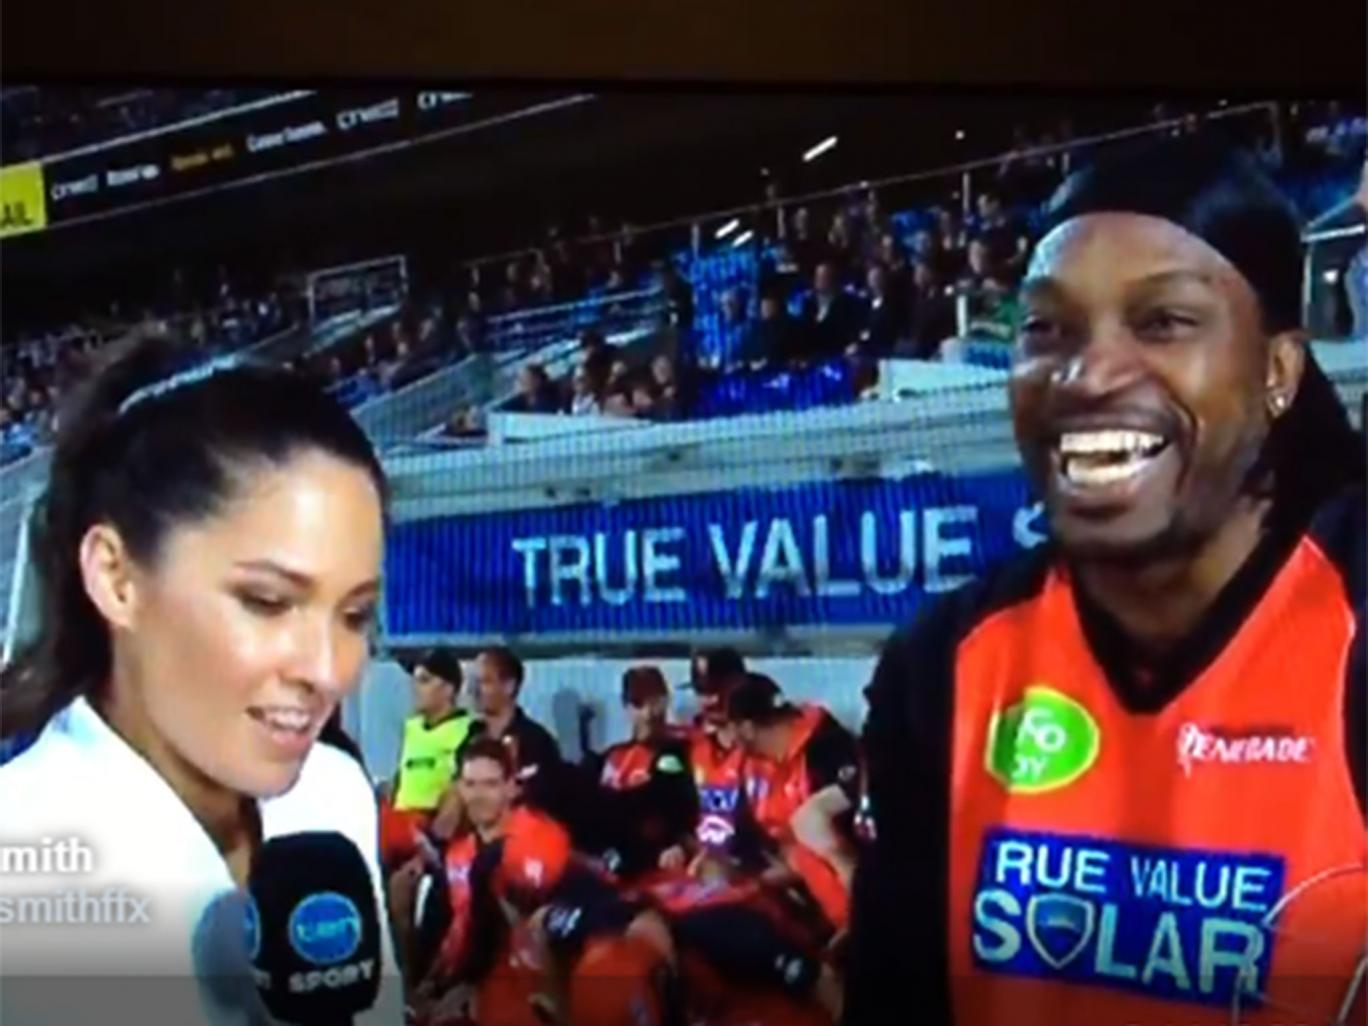 Chris Gayle flirts on Camera, raises new controversy